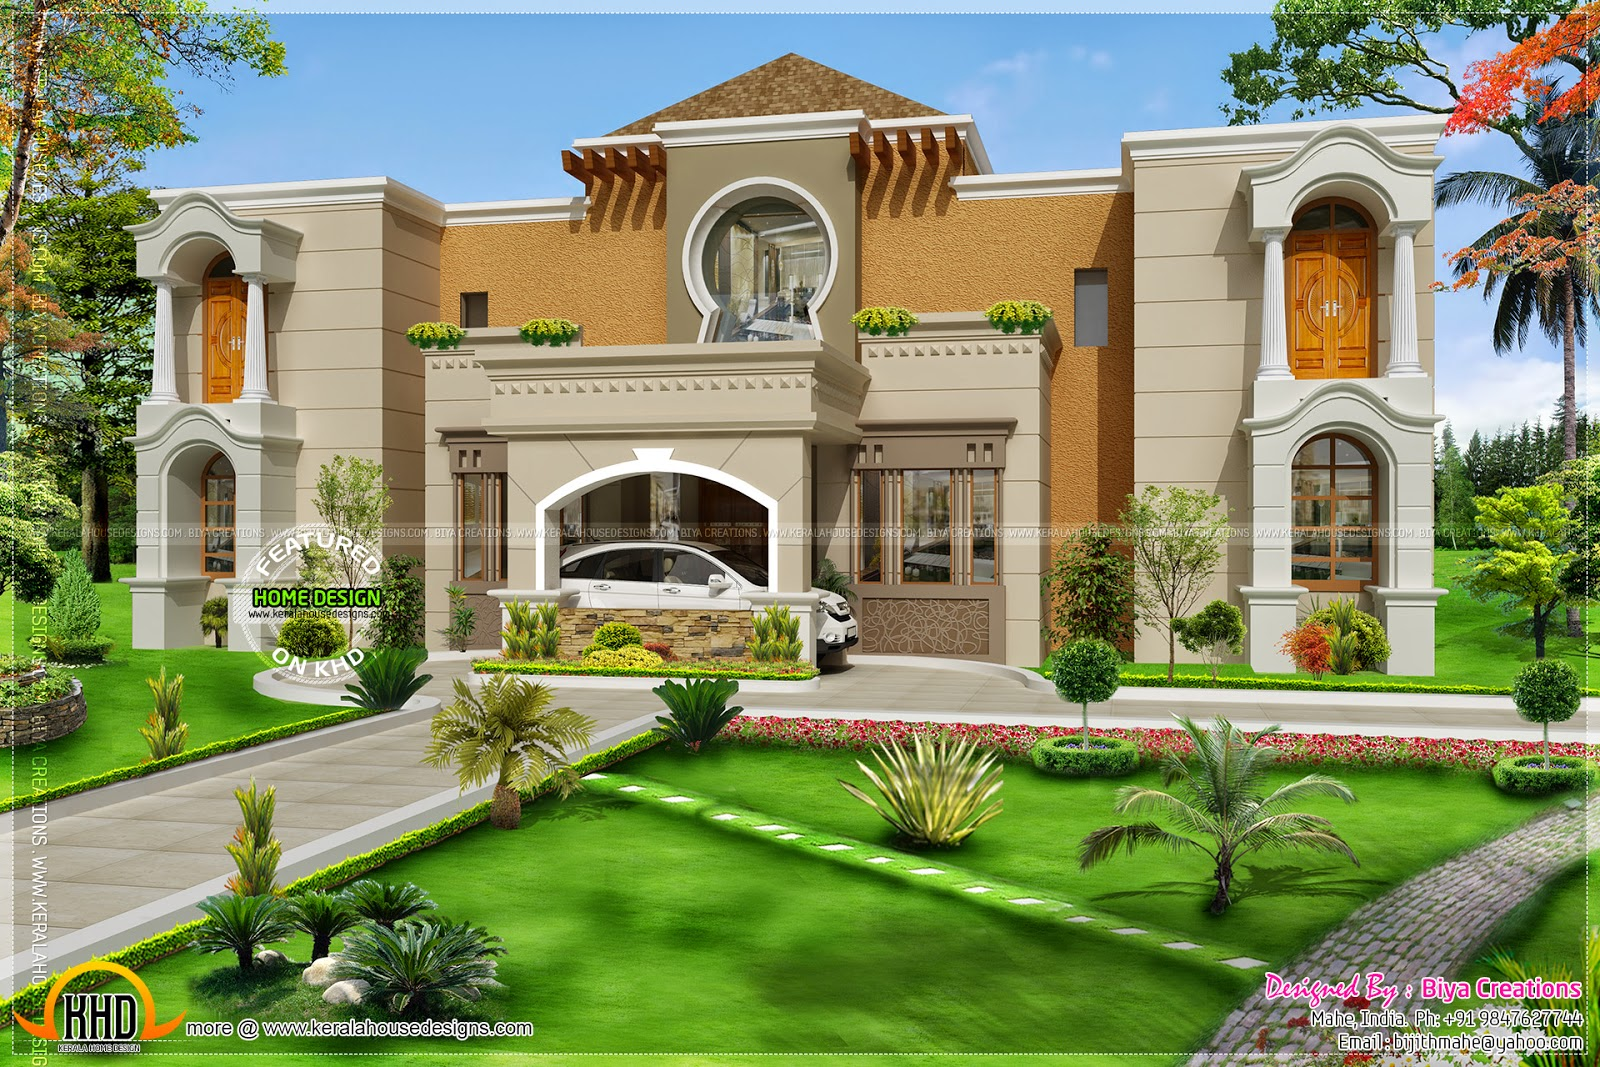 arab style home in india kerala home design and floor plans floor plan house design arabic house designs arabic house